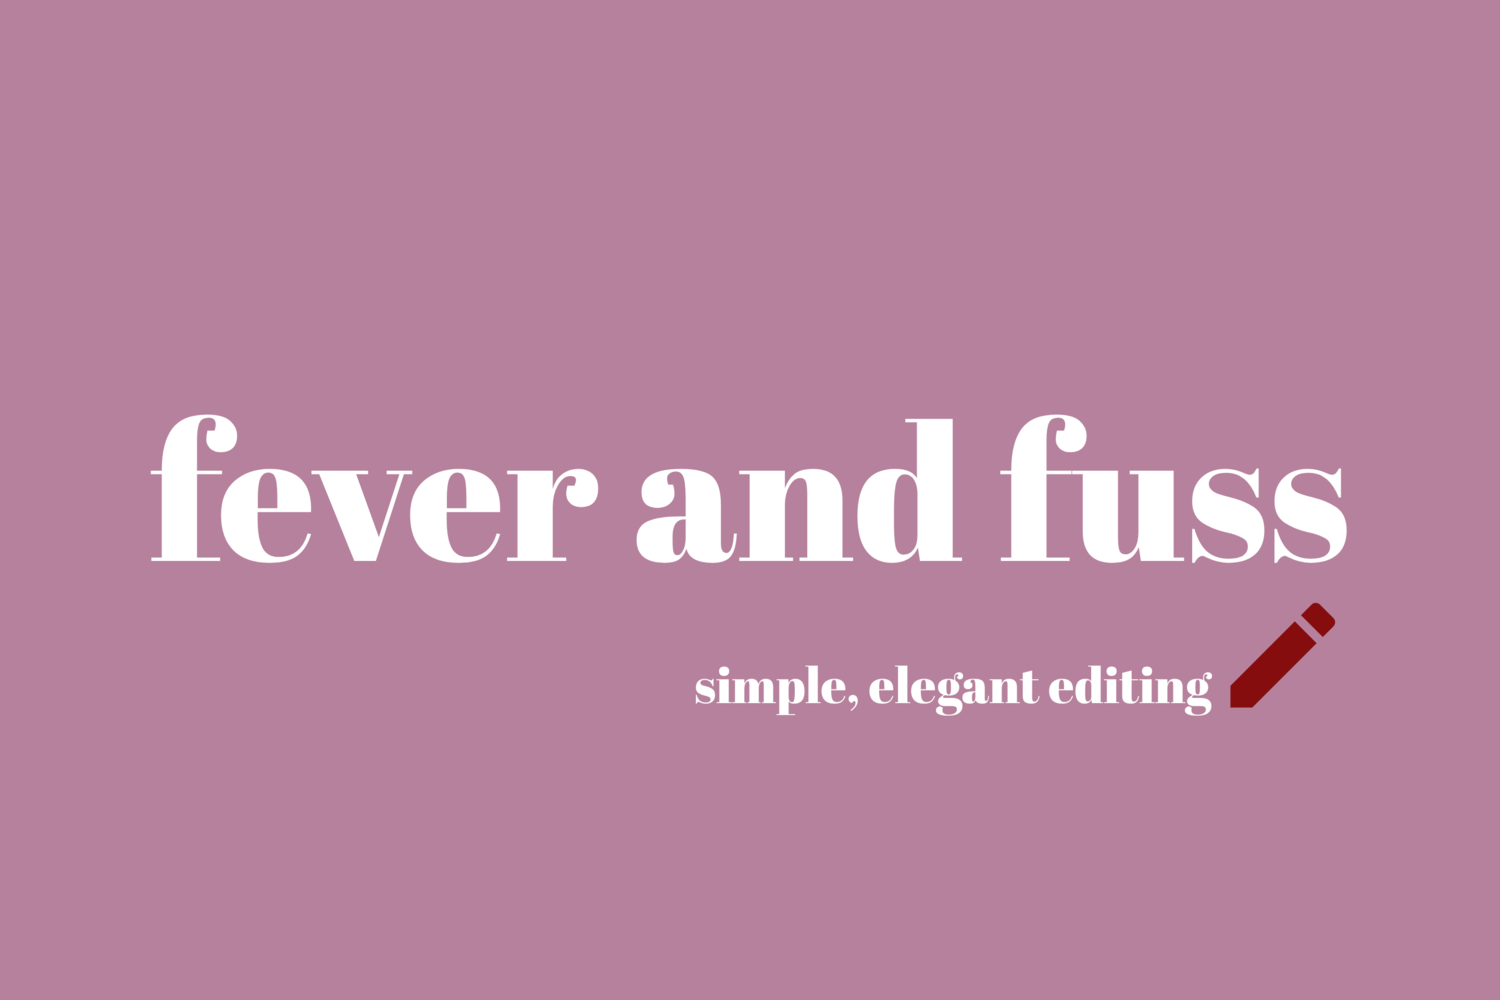 Fever and Fuss Editing